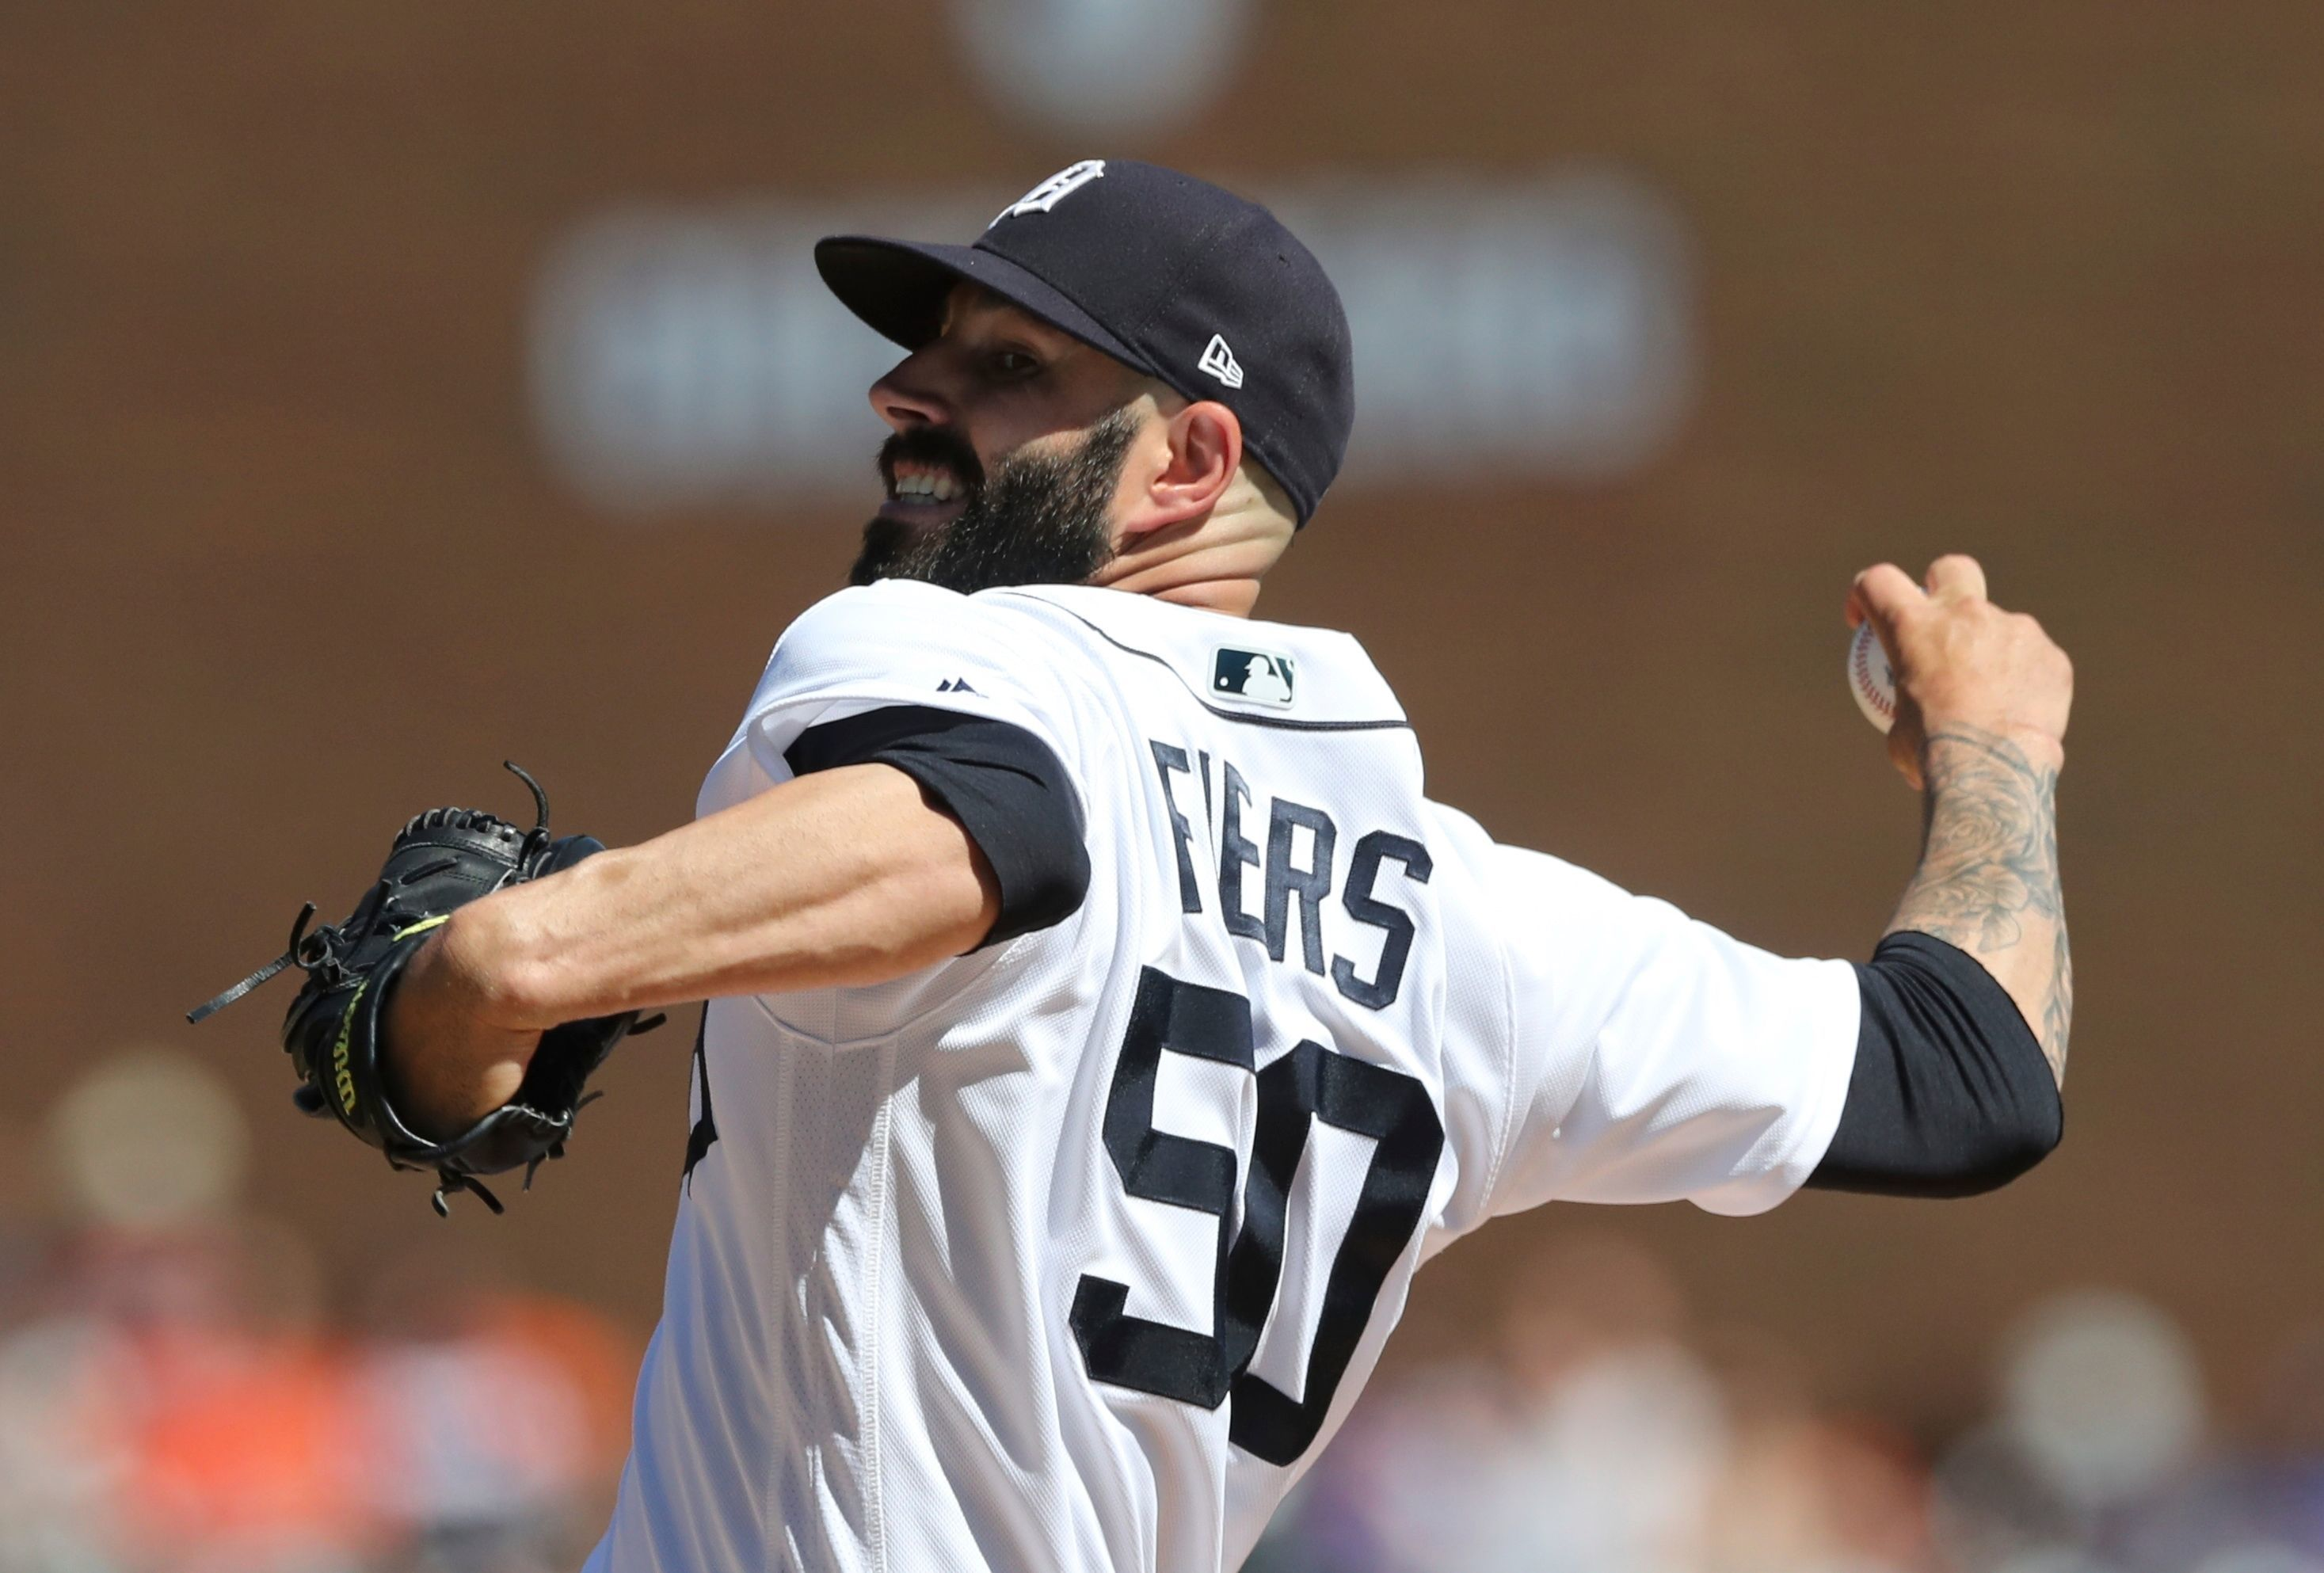 No. 50: Mike Fiers